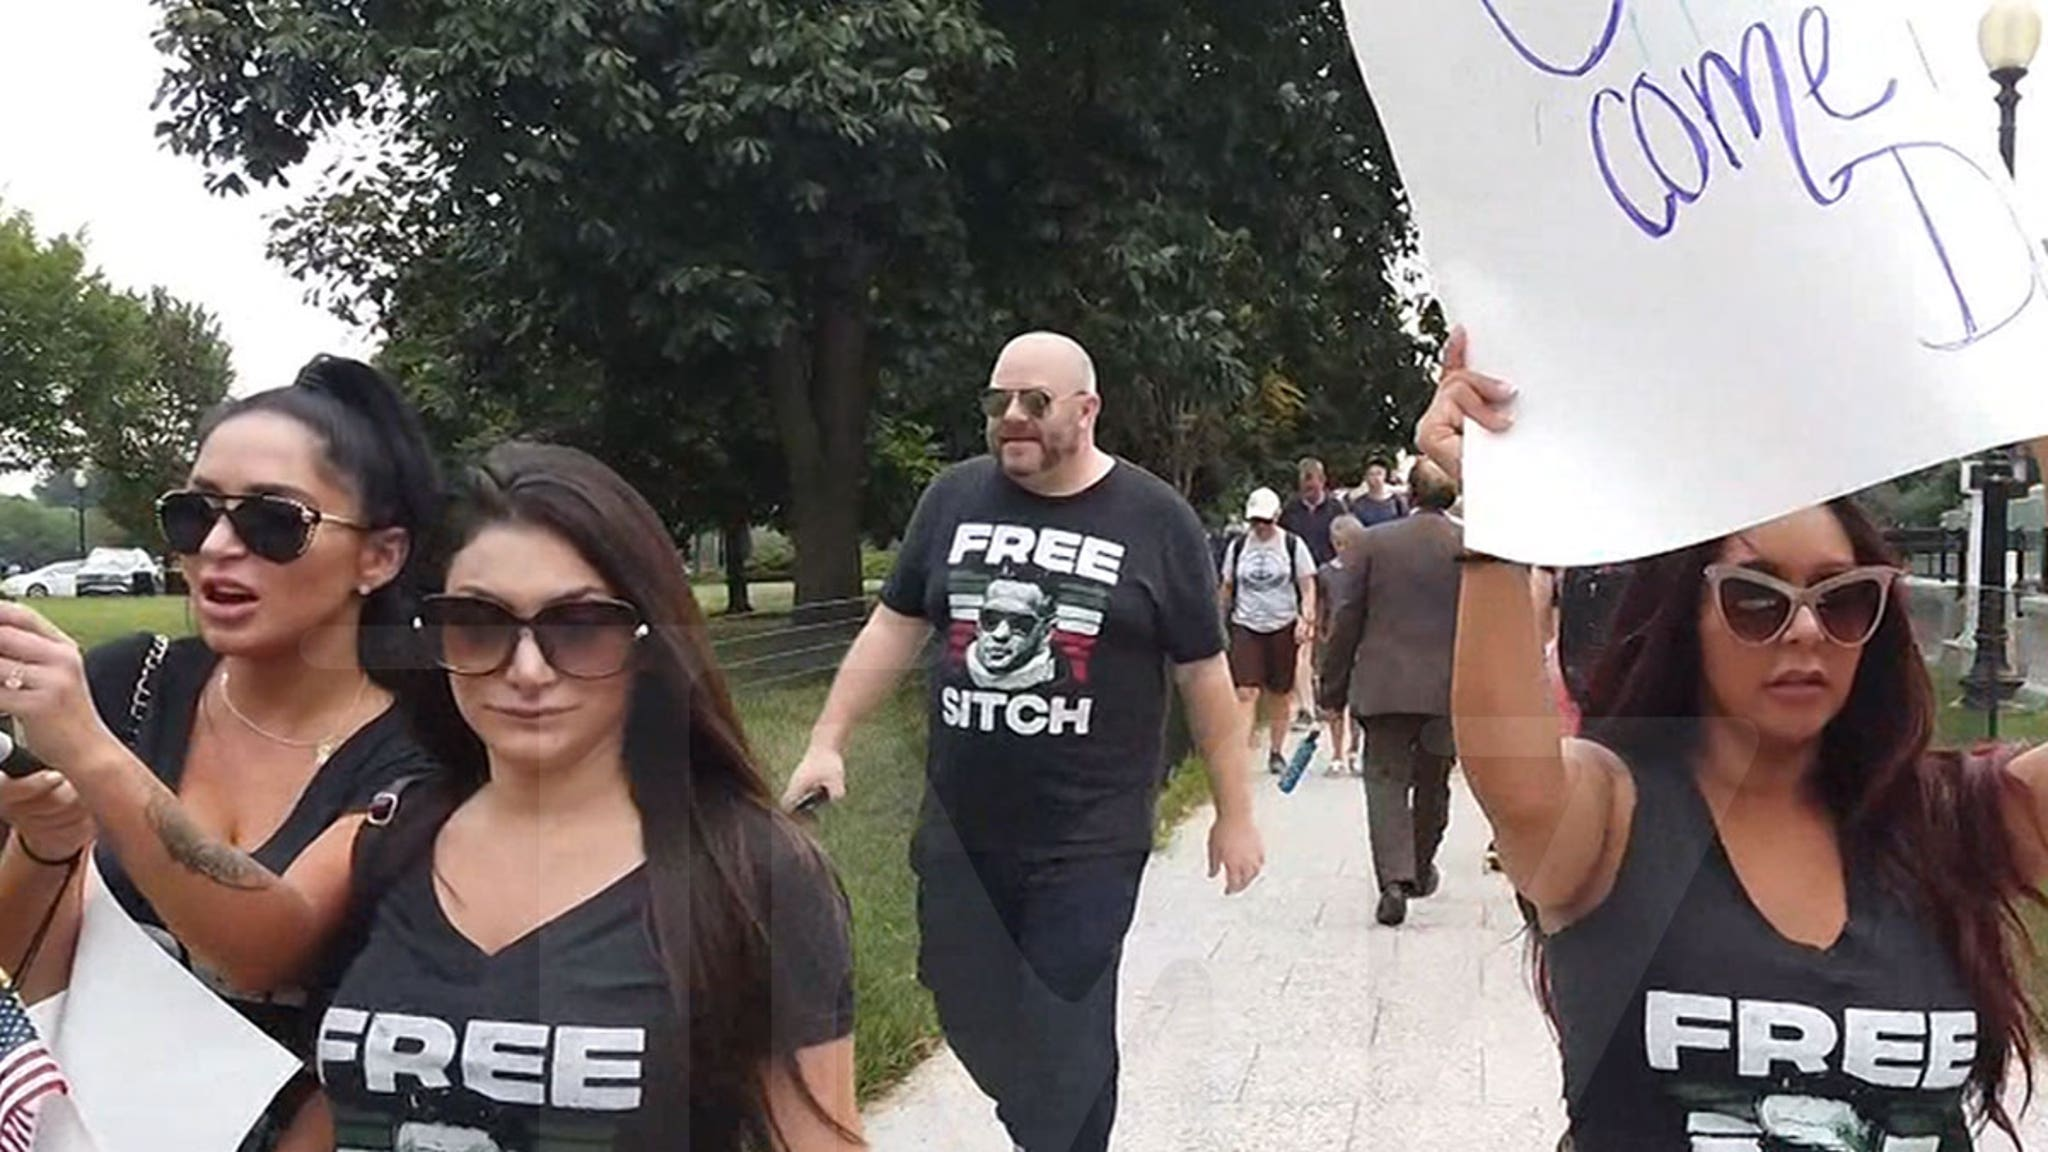 'Jersey Shore' Girls Picket for Release of 'The Situation' in D.C.